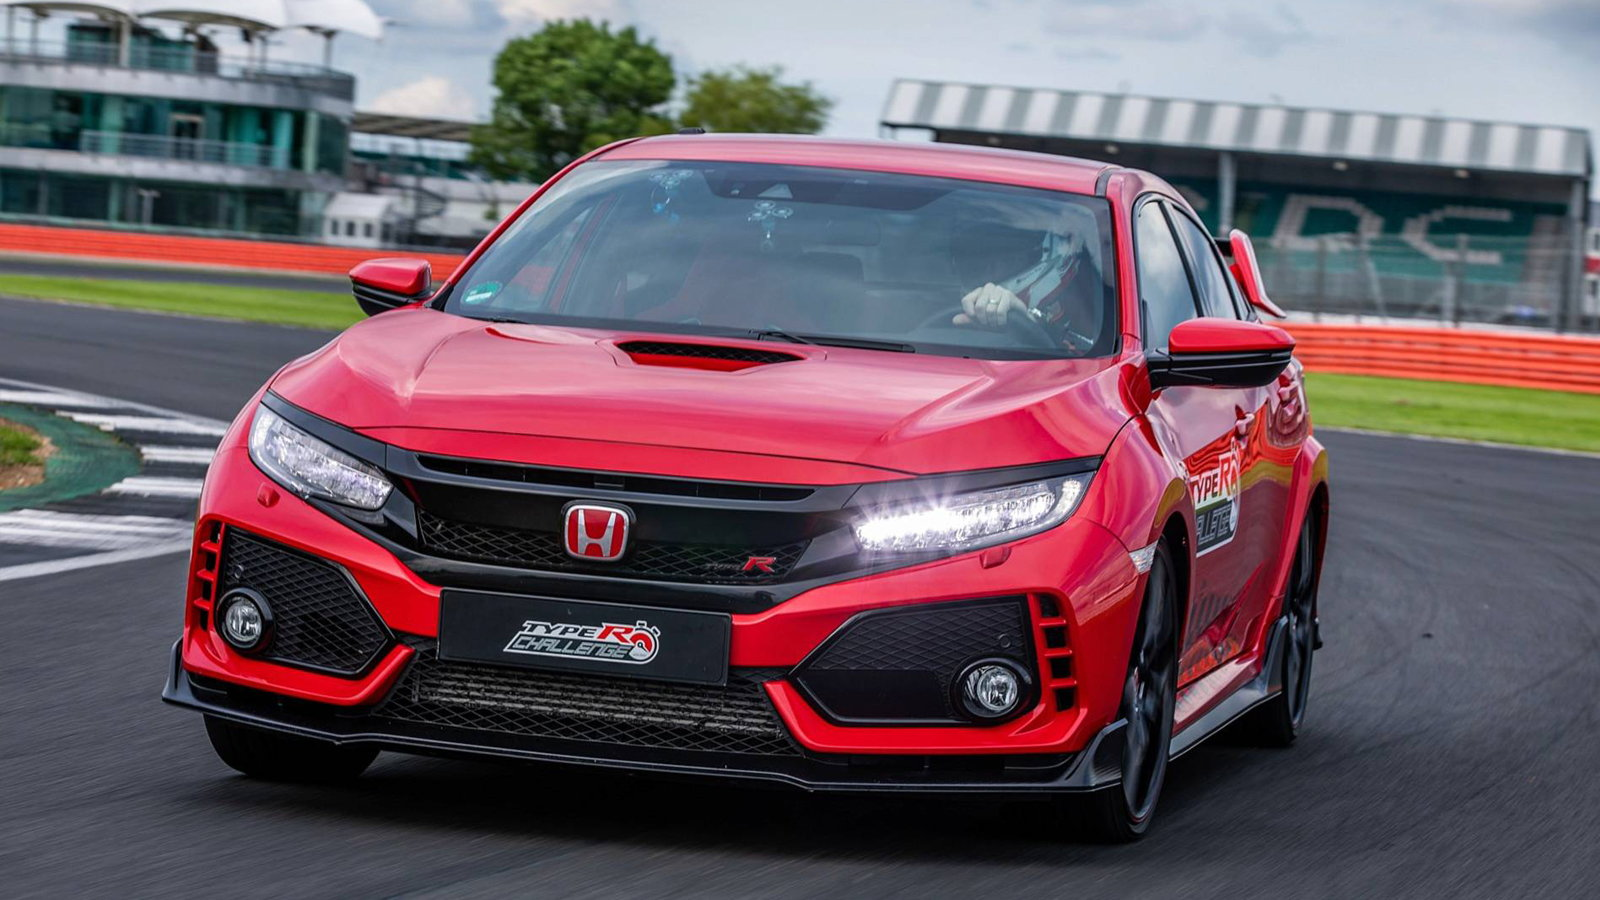 Civic Type R Breaks Record at Silverstone